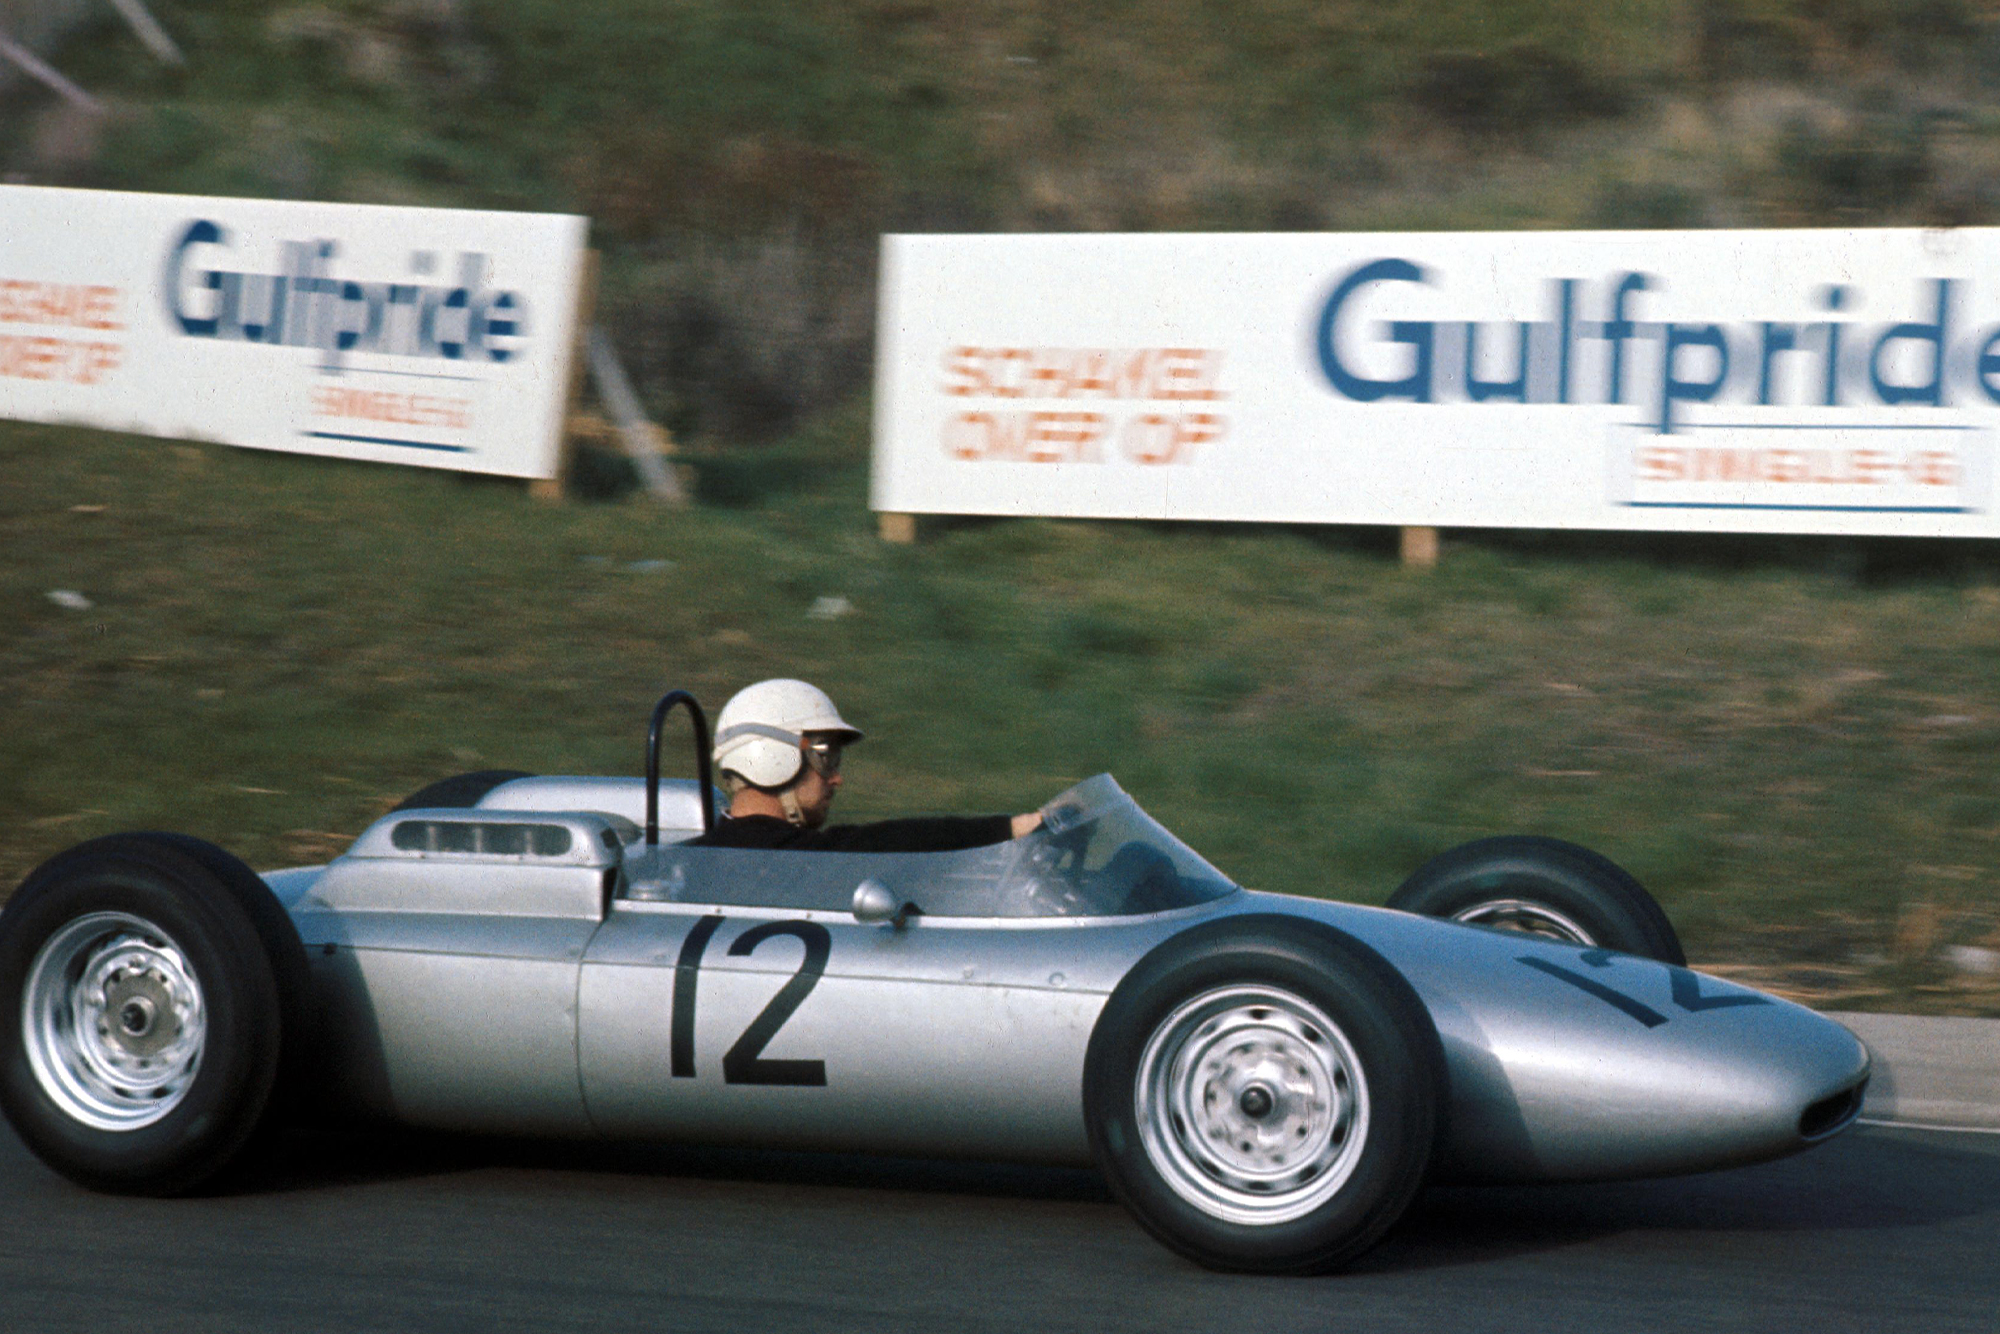 Dan Gurney put his Porsche in 8th place on the starting grid